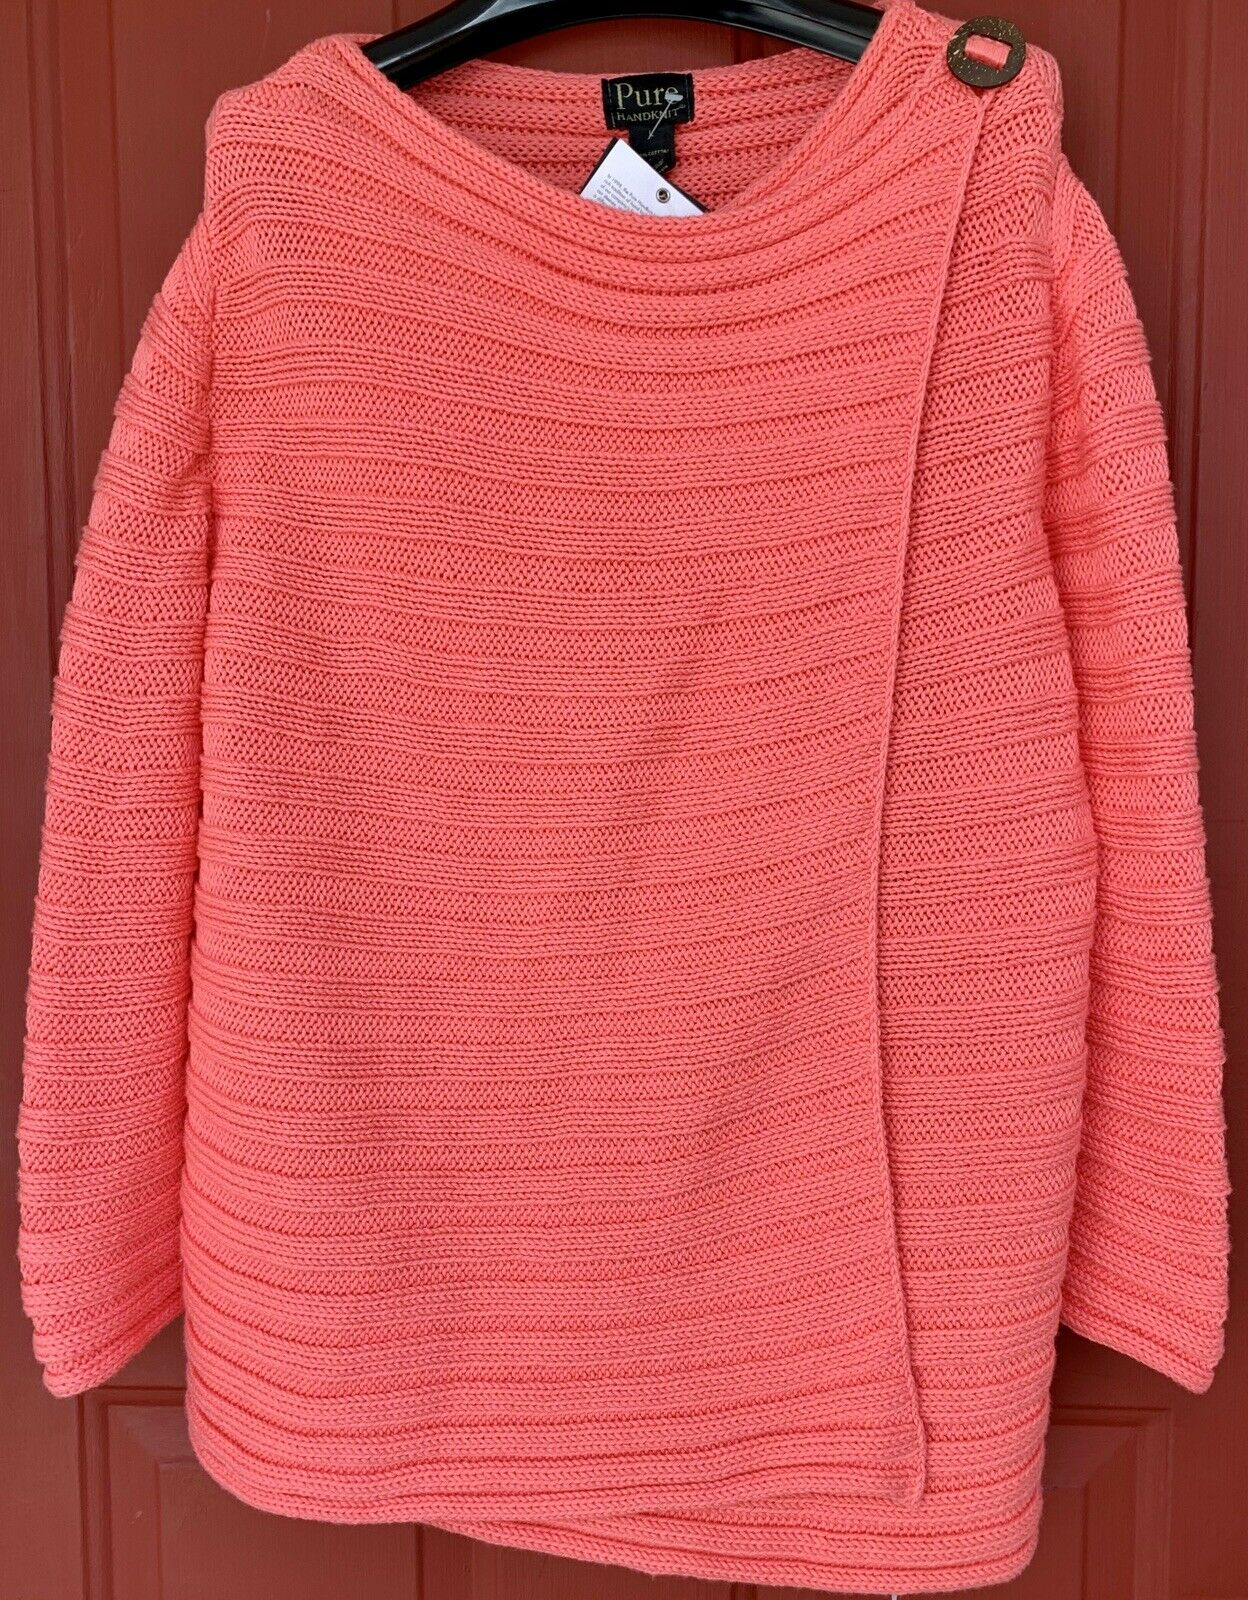 NEW NWT Pure Handknit Summer Crush Hanky Panky Coral Cardigan Sweater Size L